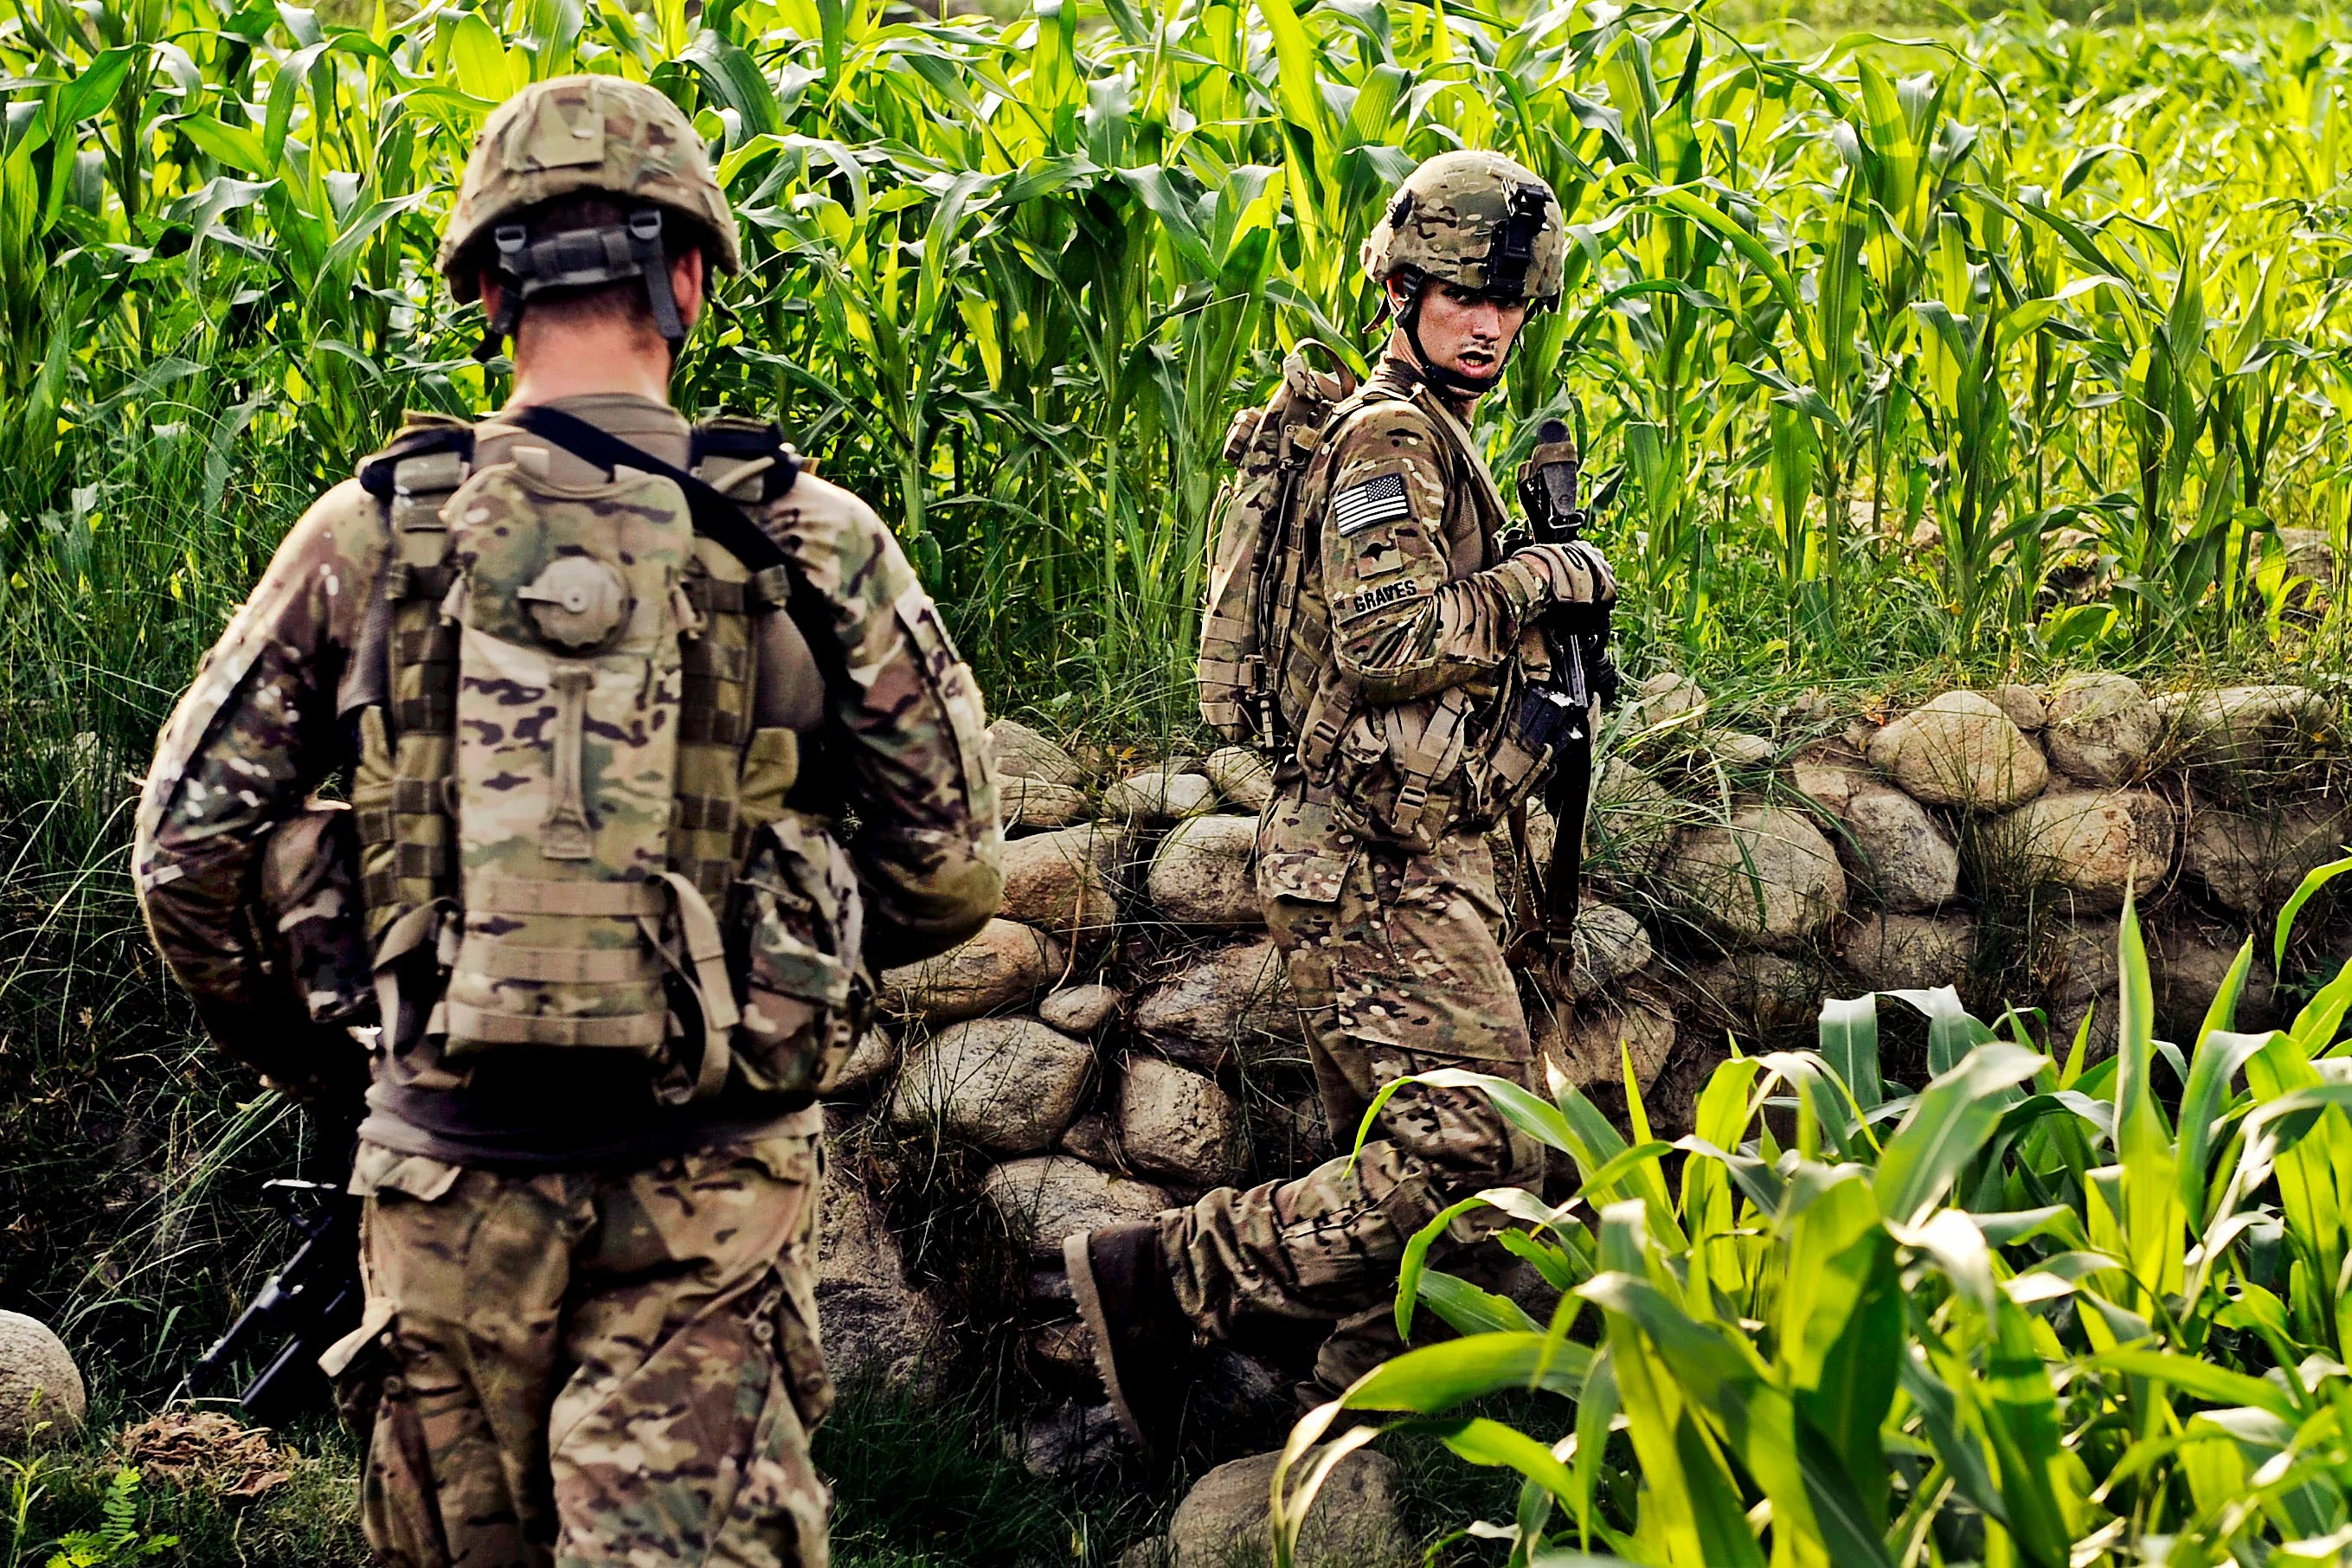 TenCate Advanced Armor Awarded US Army XSBI Body Armor Contract